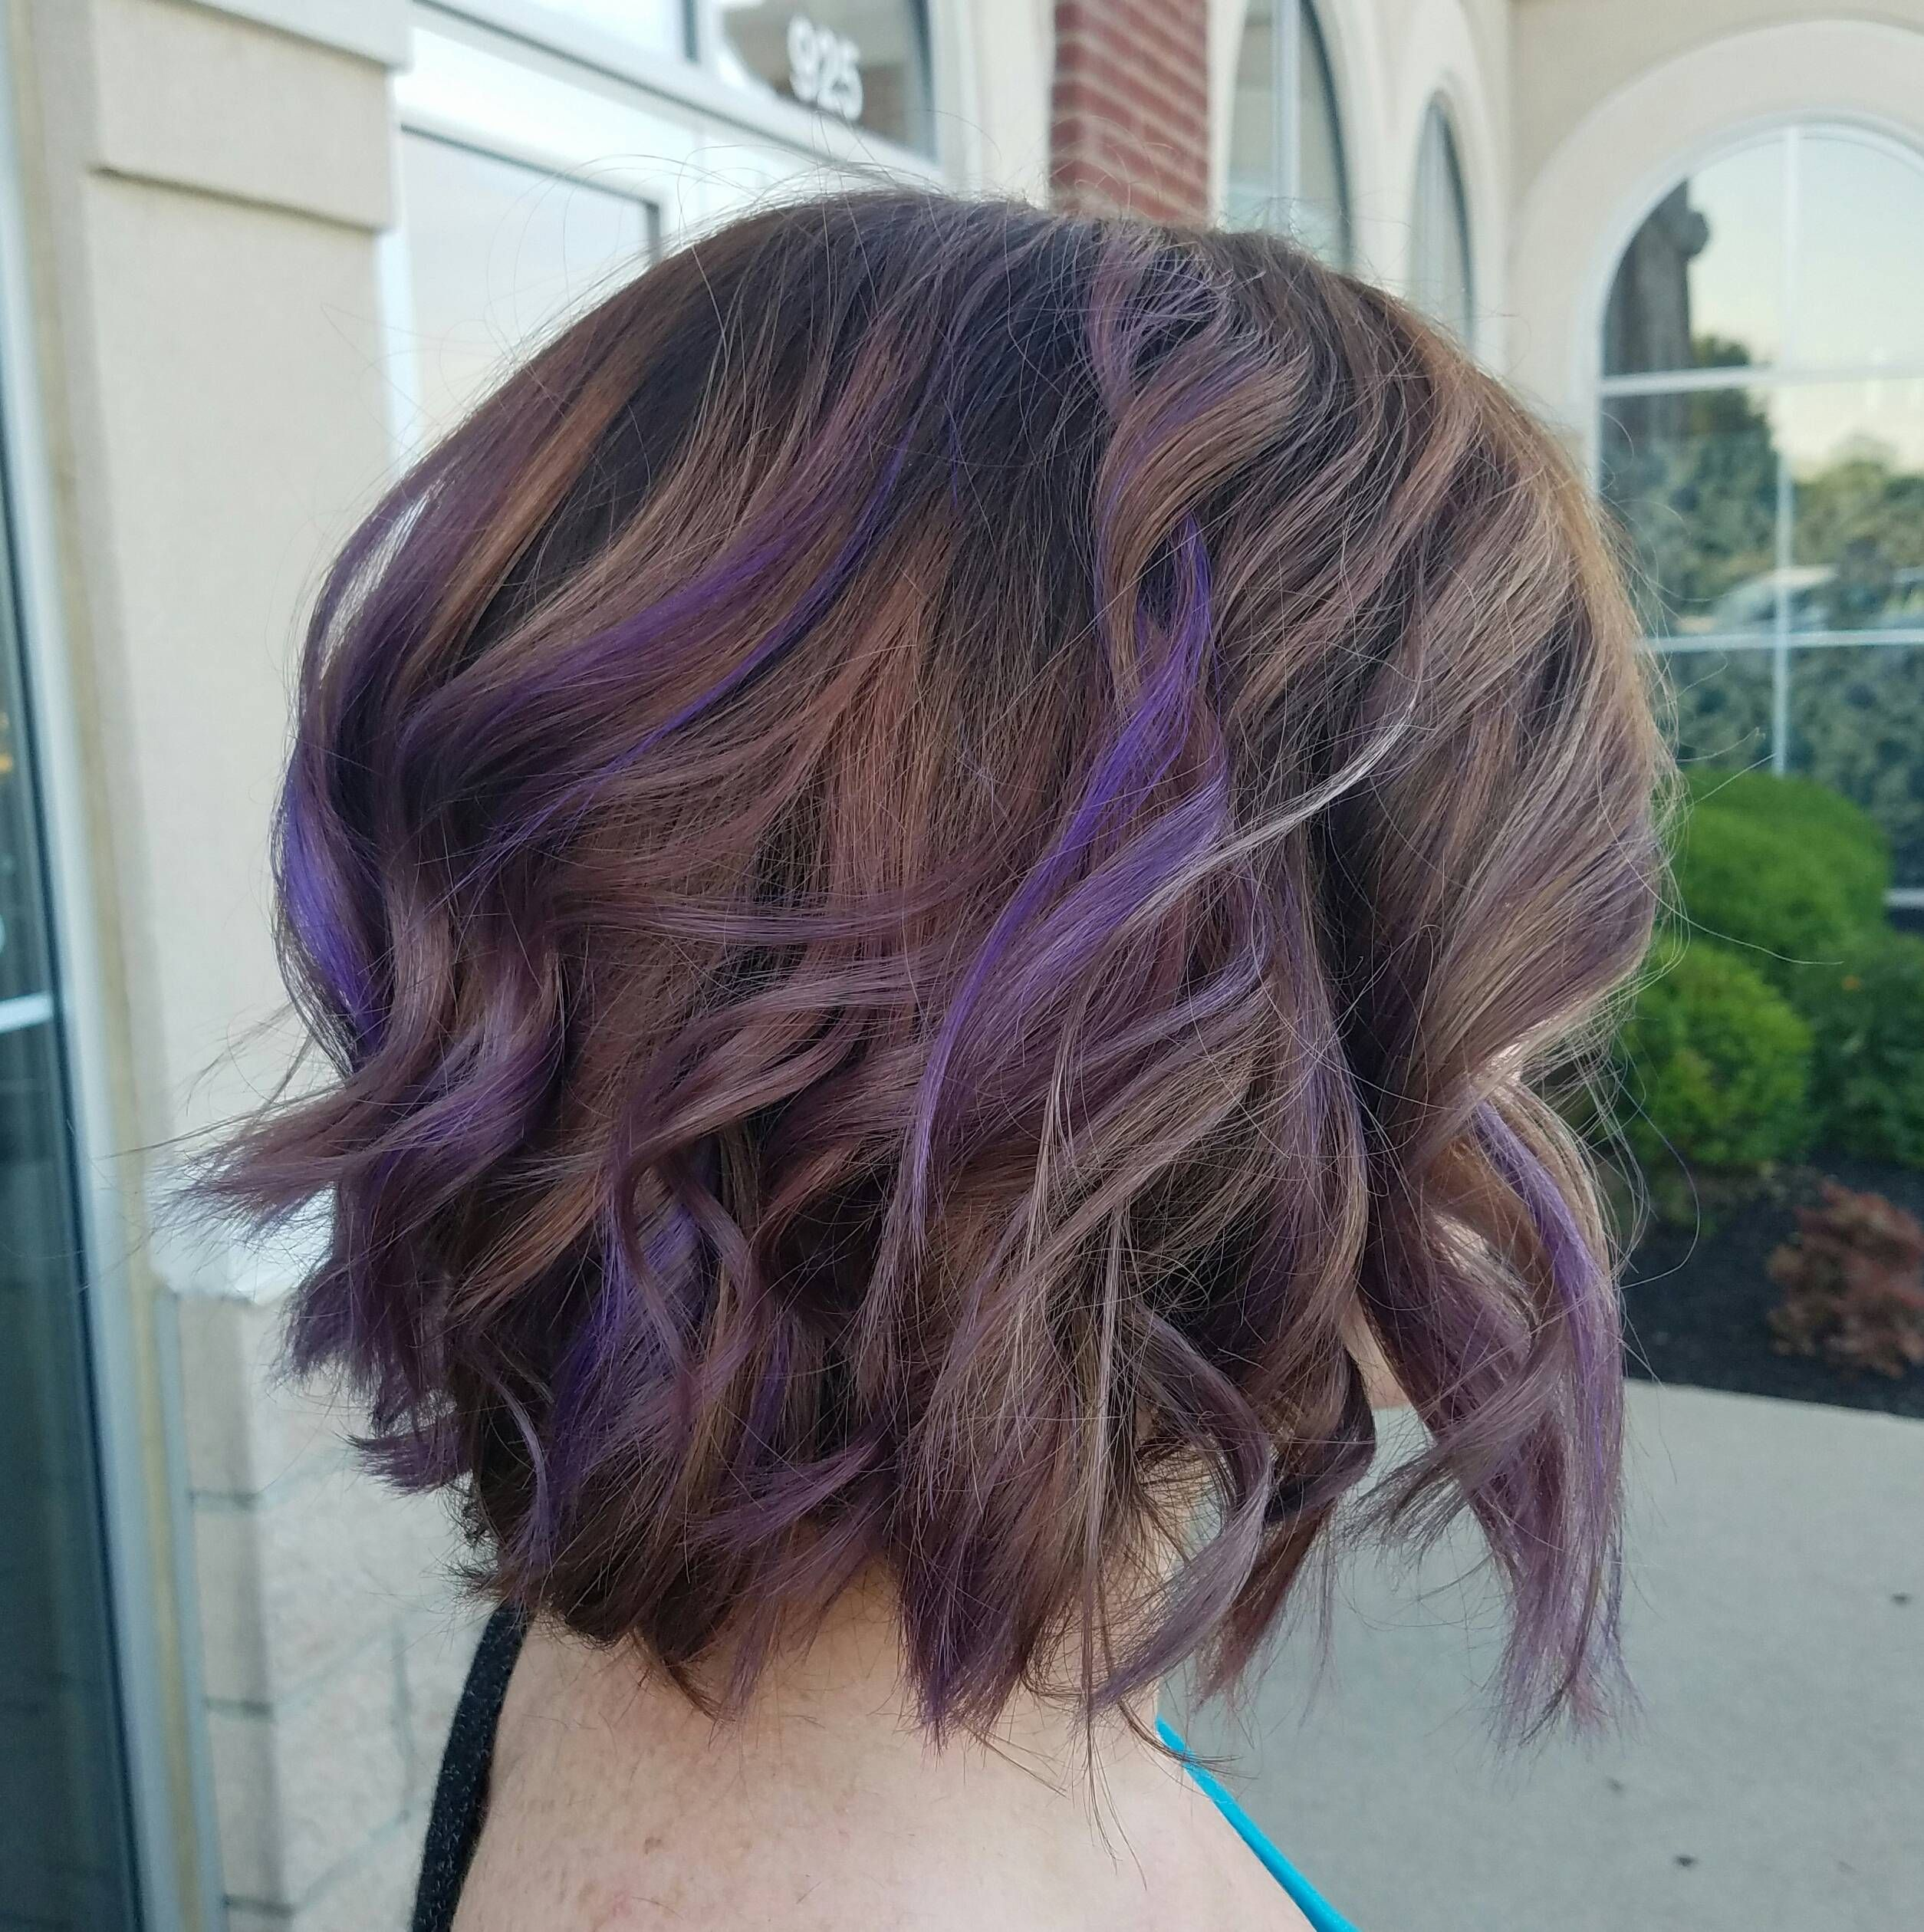 Took 3 Hours But I Got Some Rose Gold Ish And Purple In My Dark